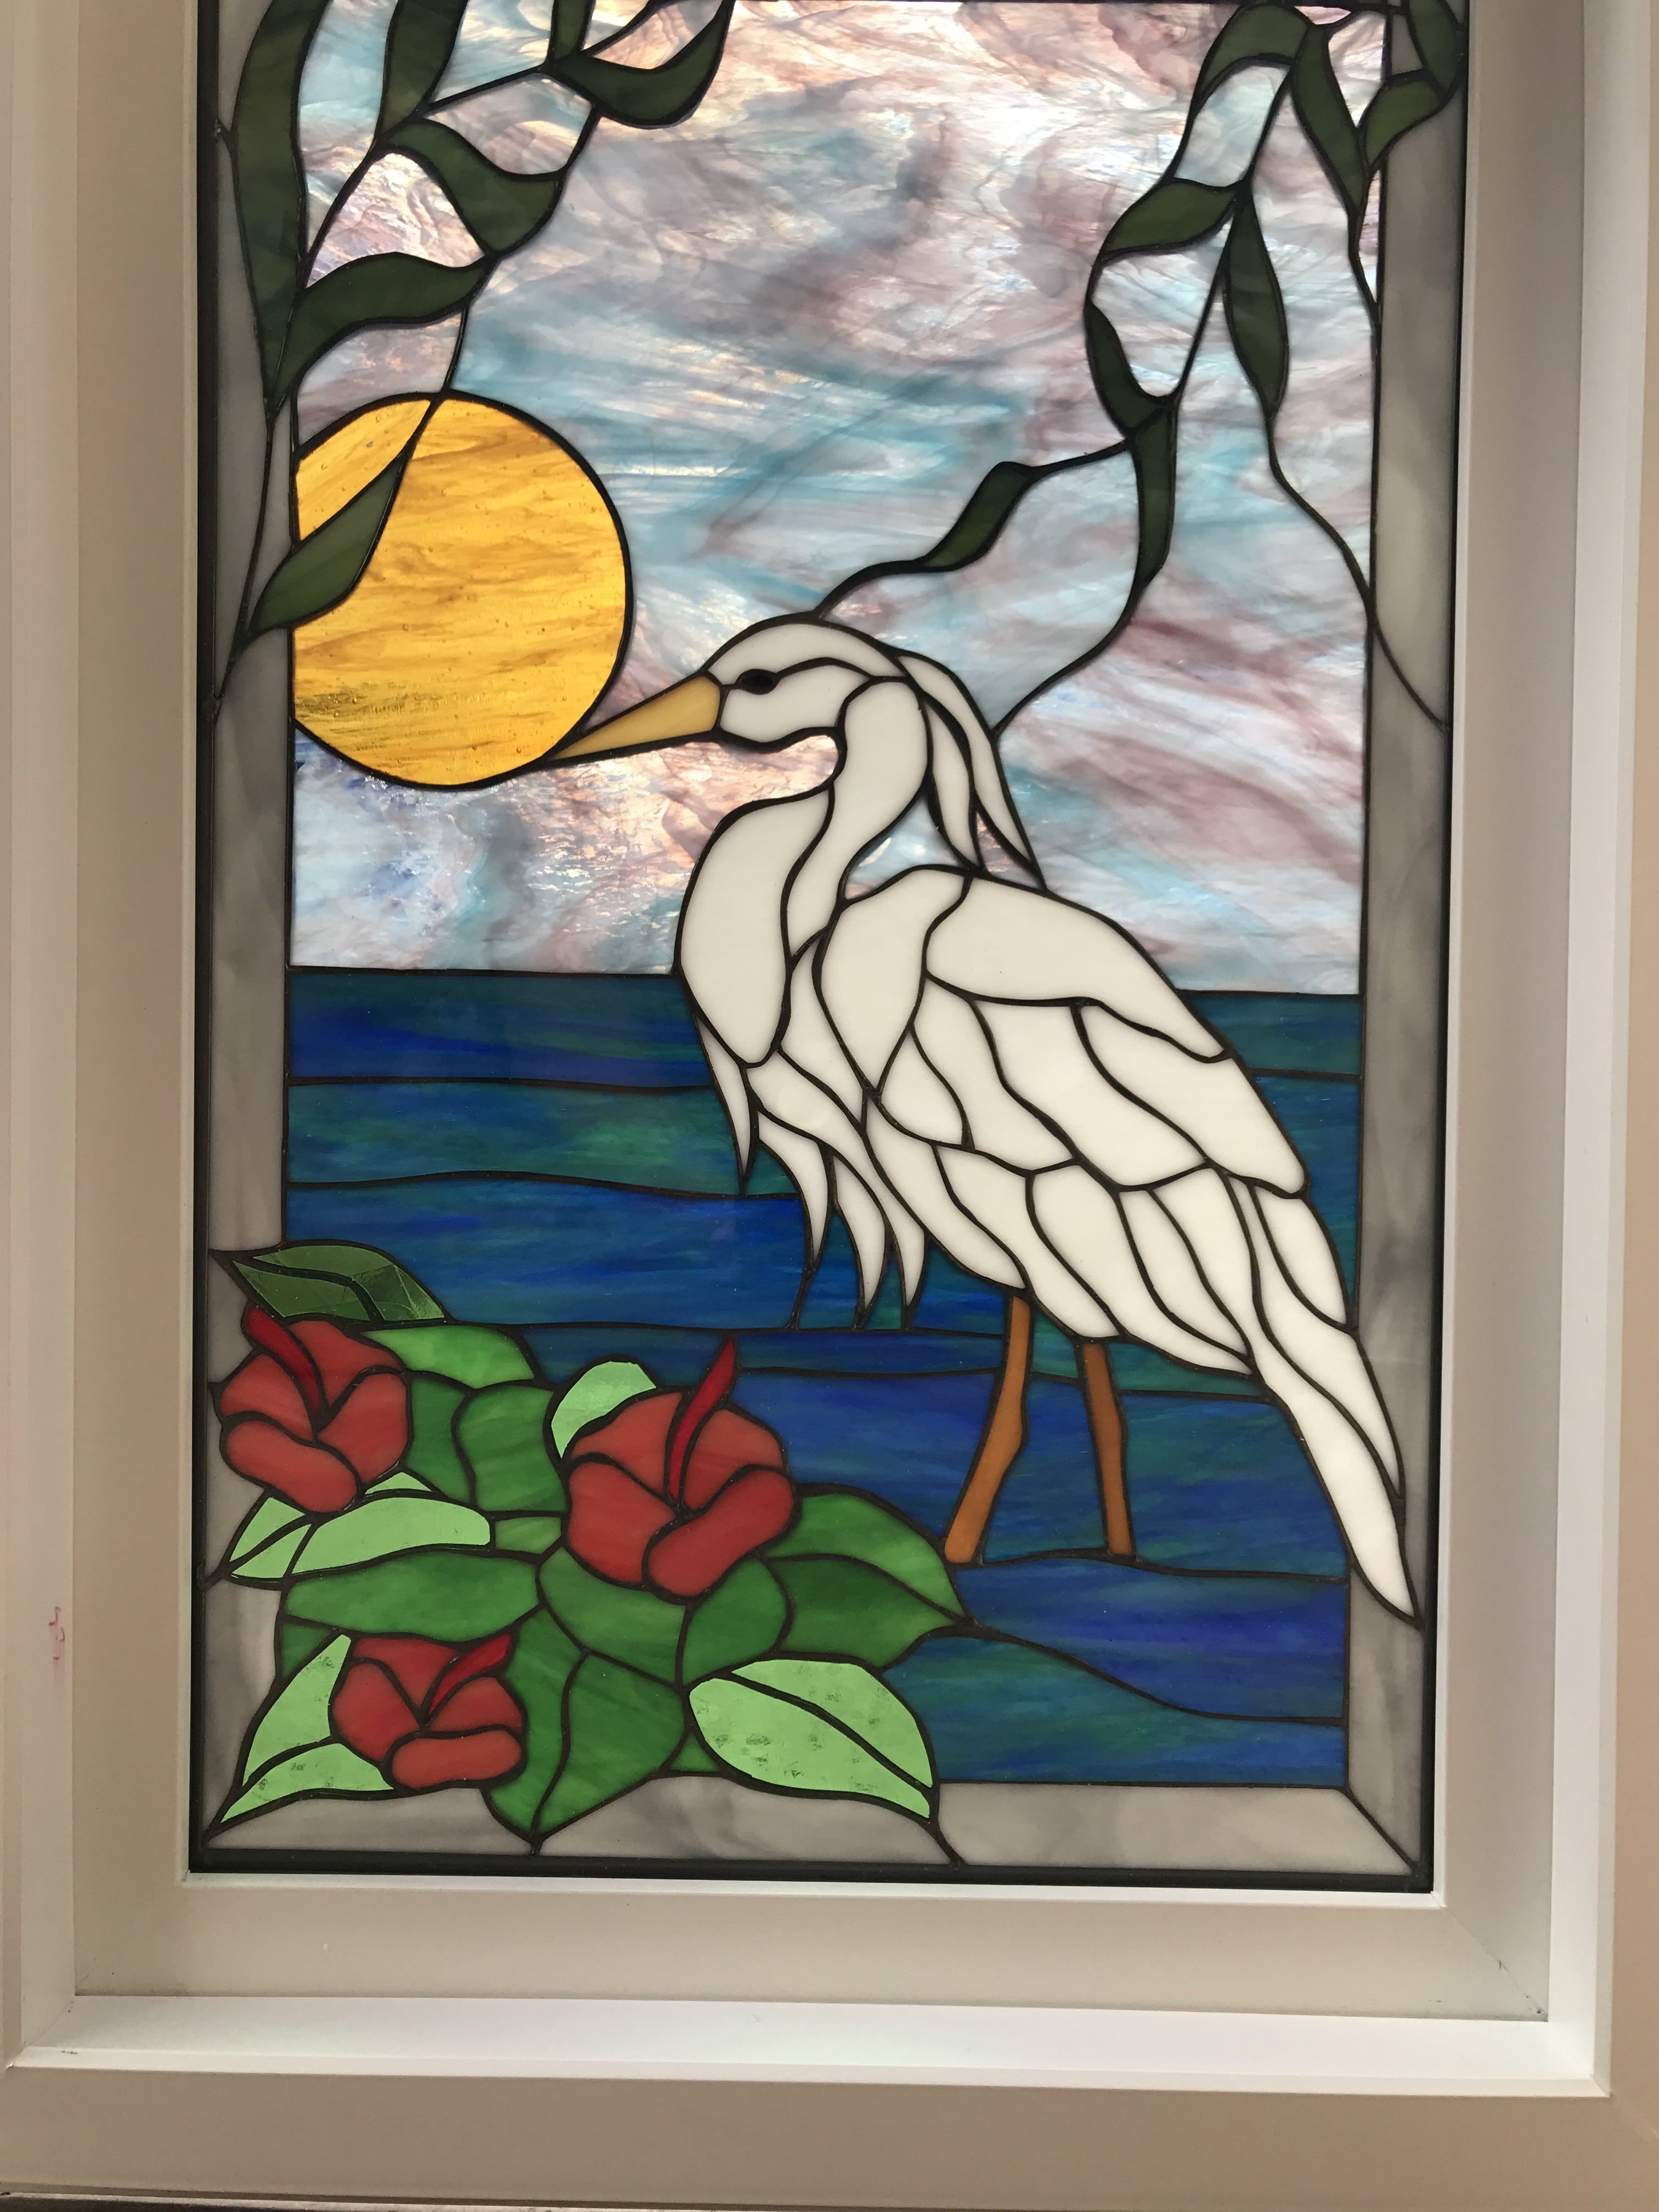 Framed Amp Insulated Egret Amp Hibiscus Leaded Stained Glass